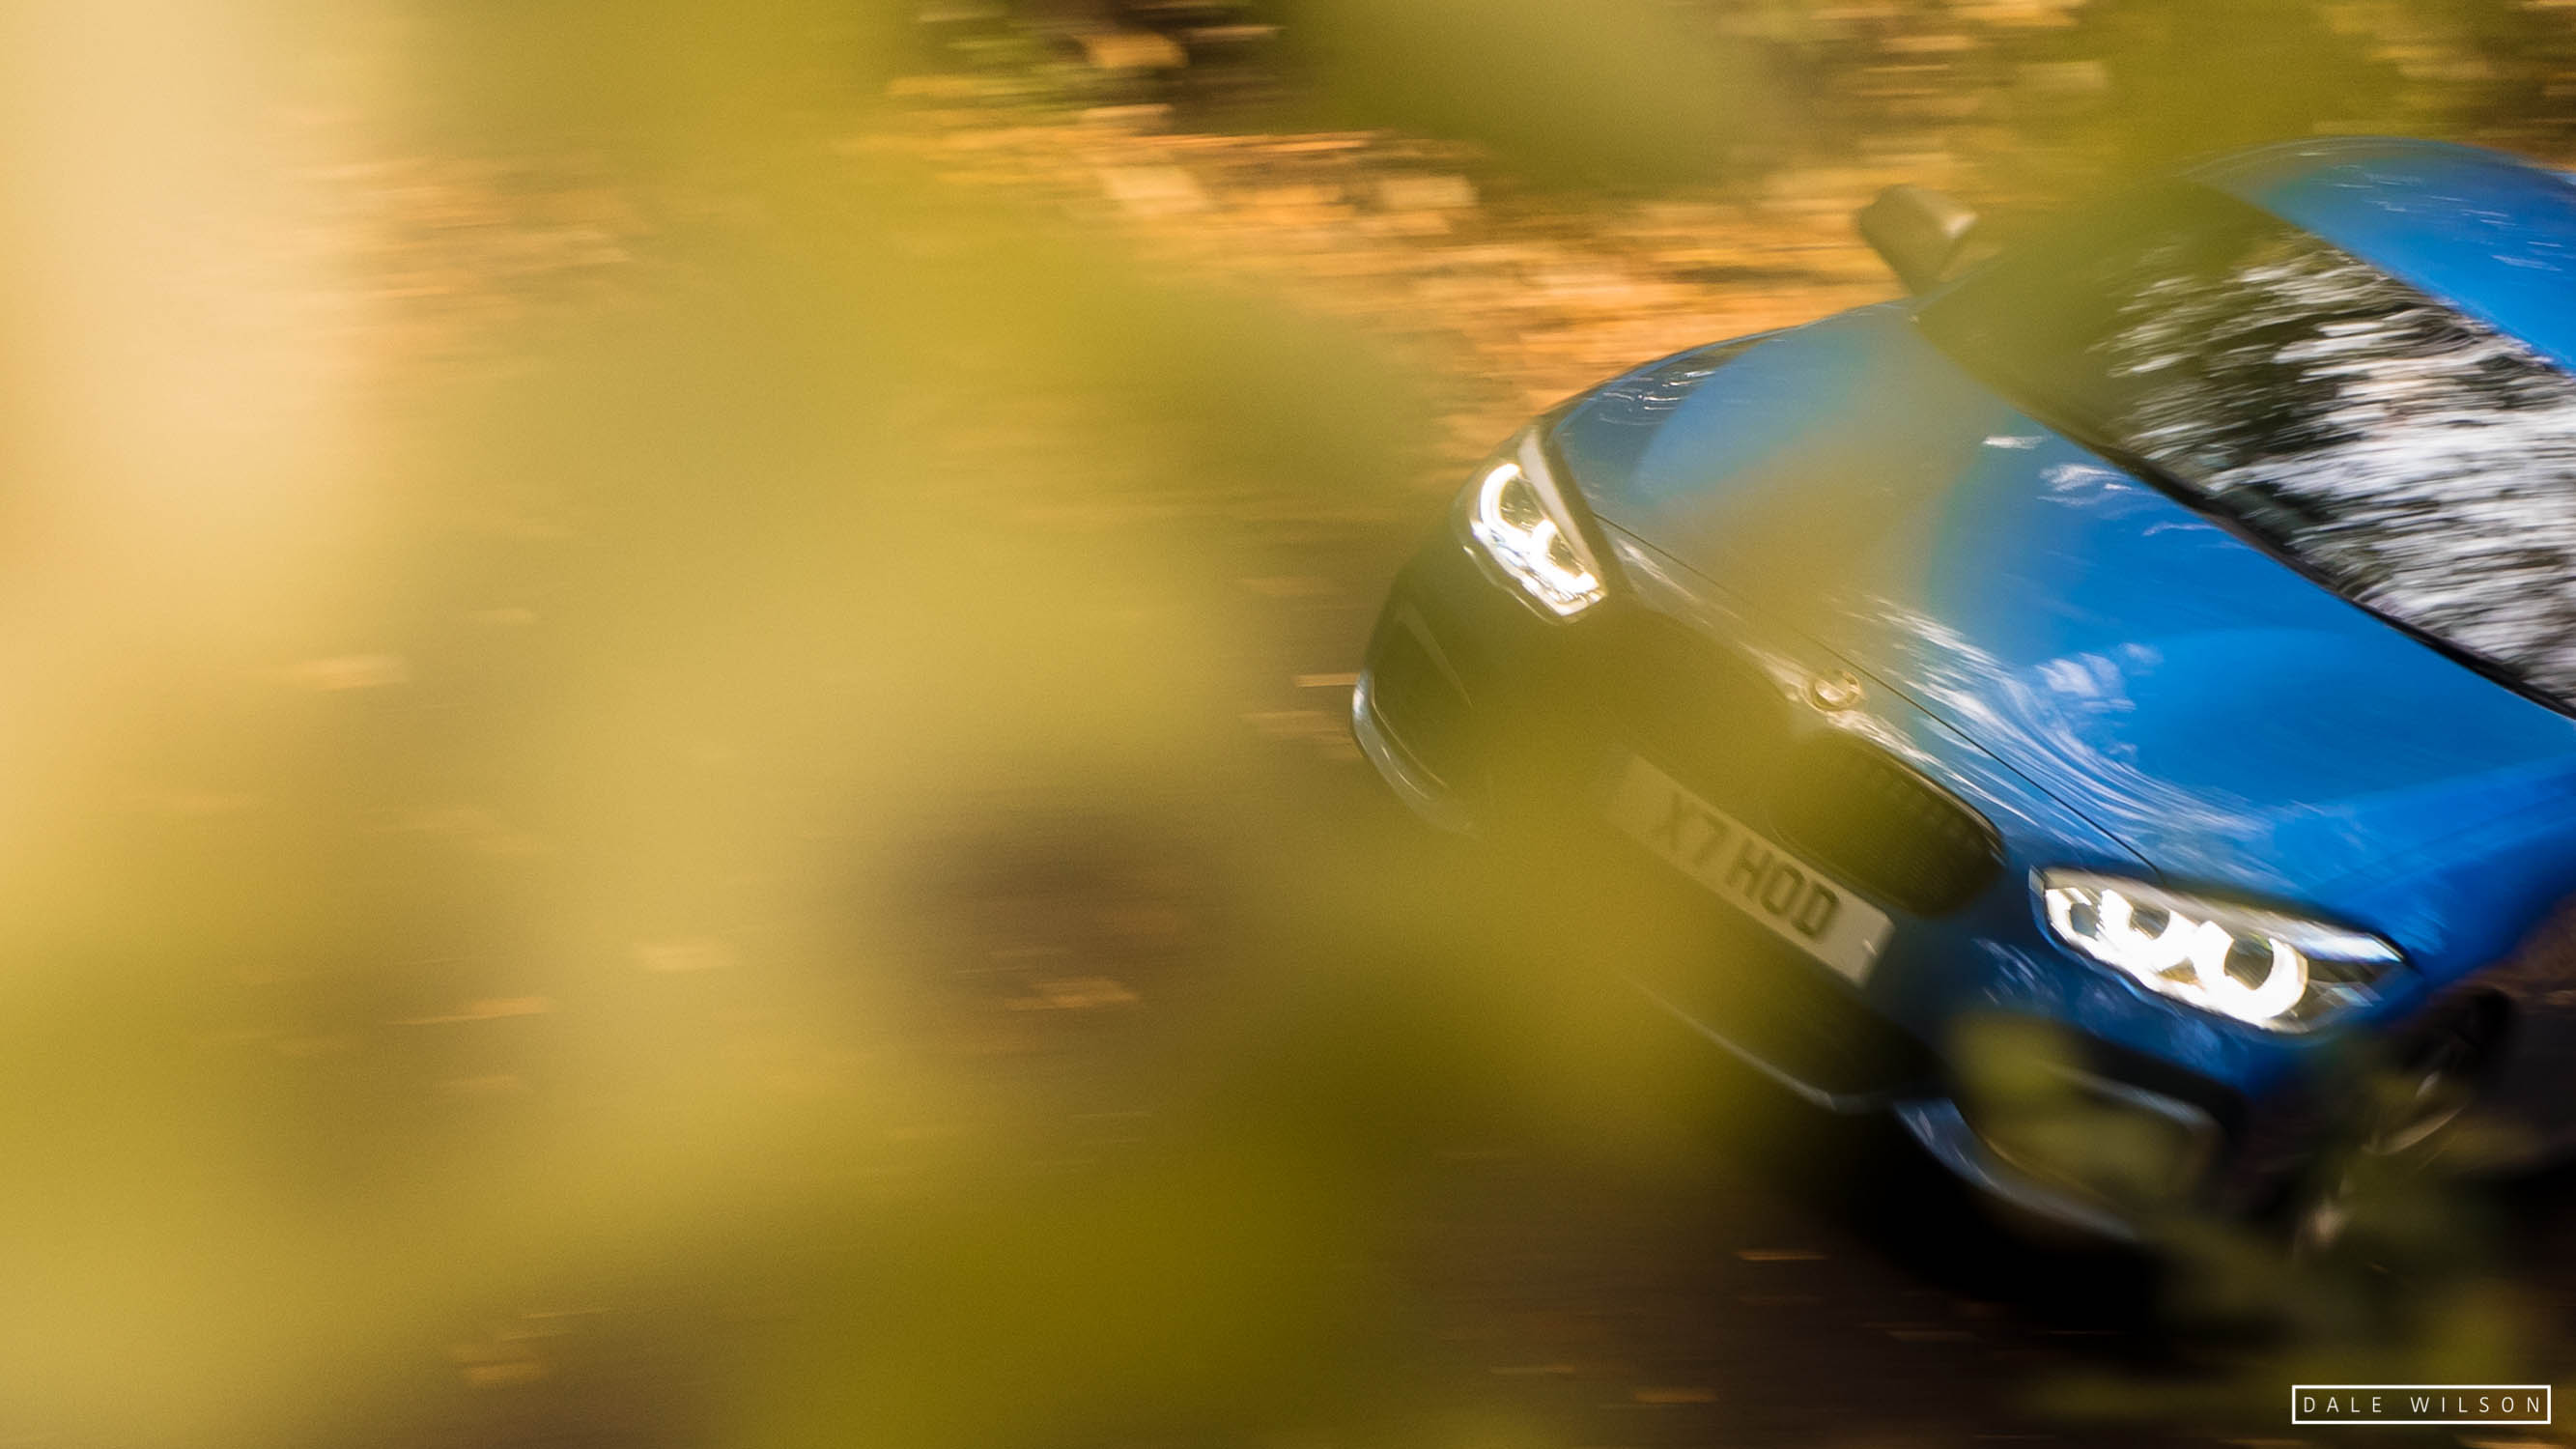 An Estoril blue BMW 135i in autumn leaves cumbria panning shot